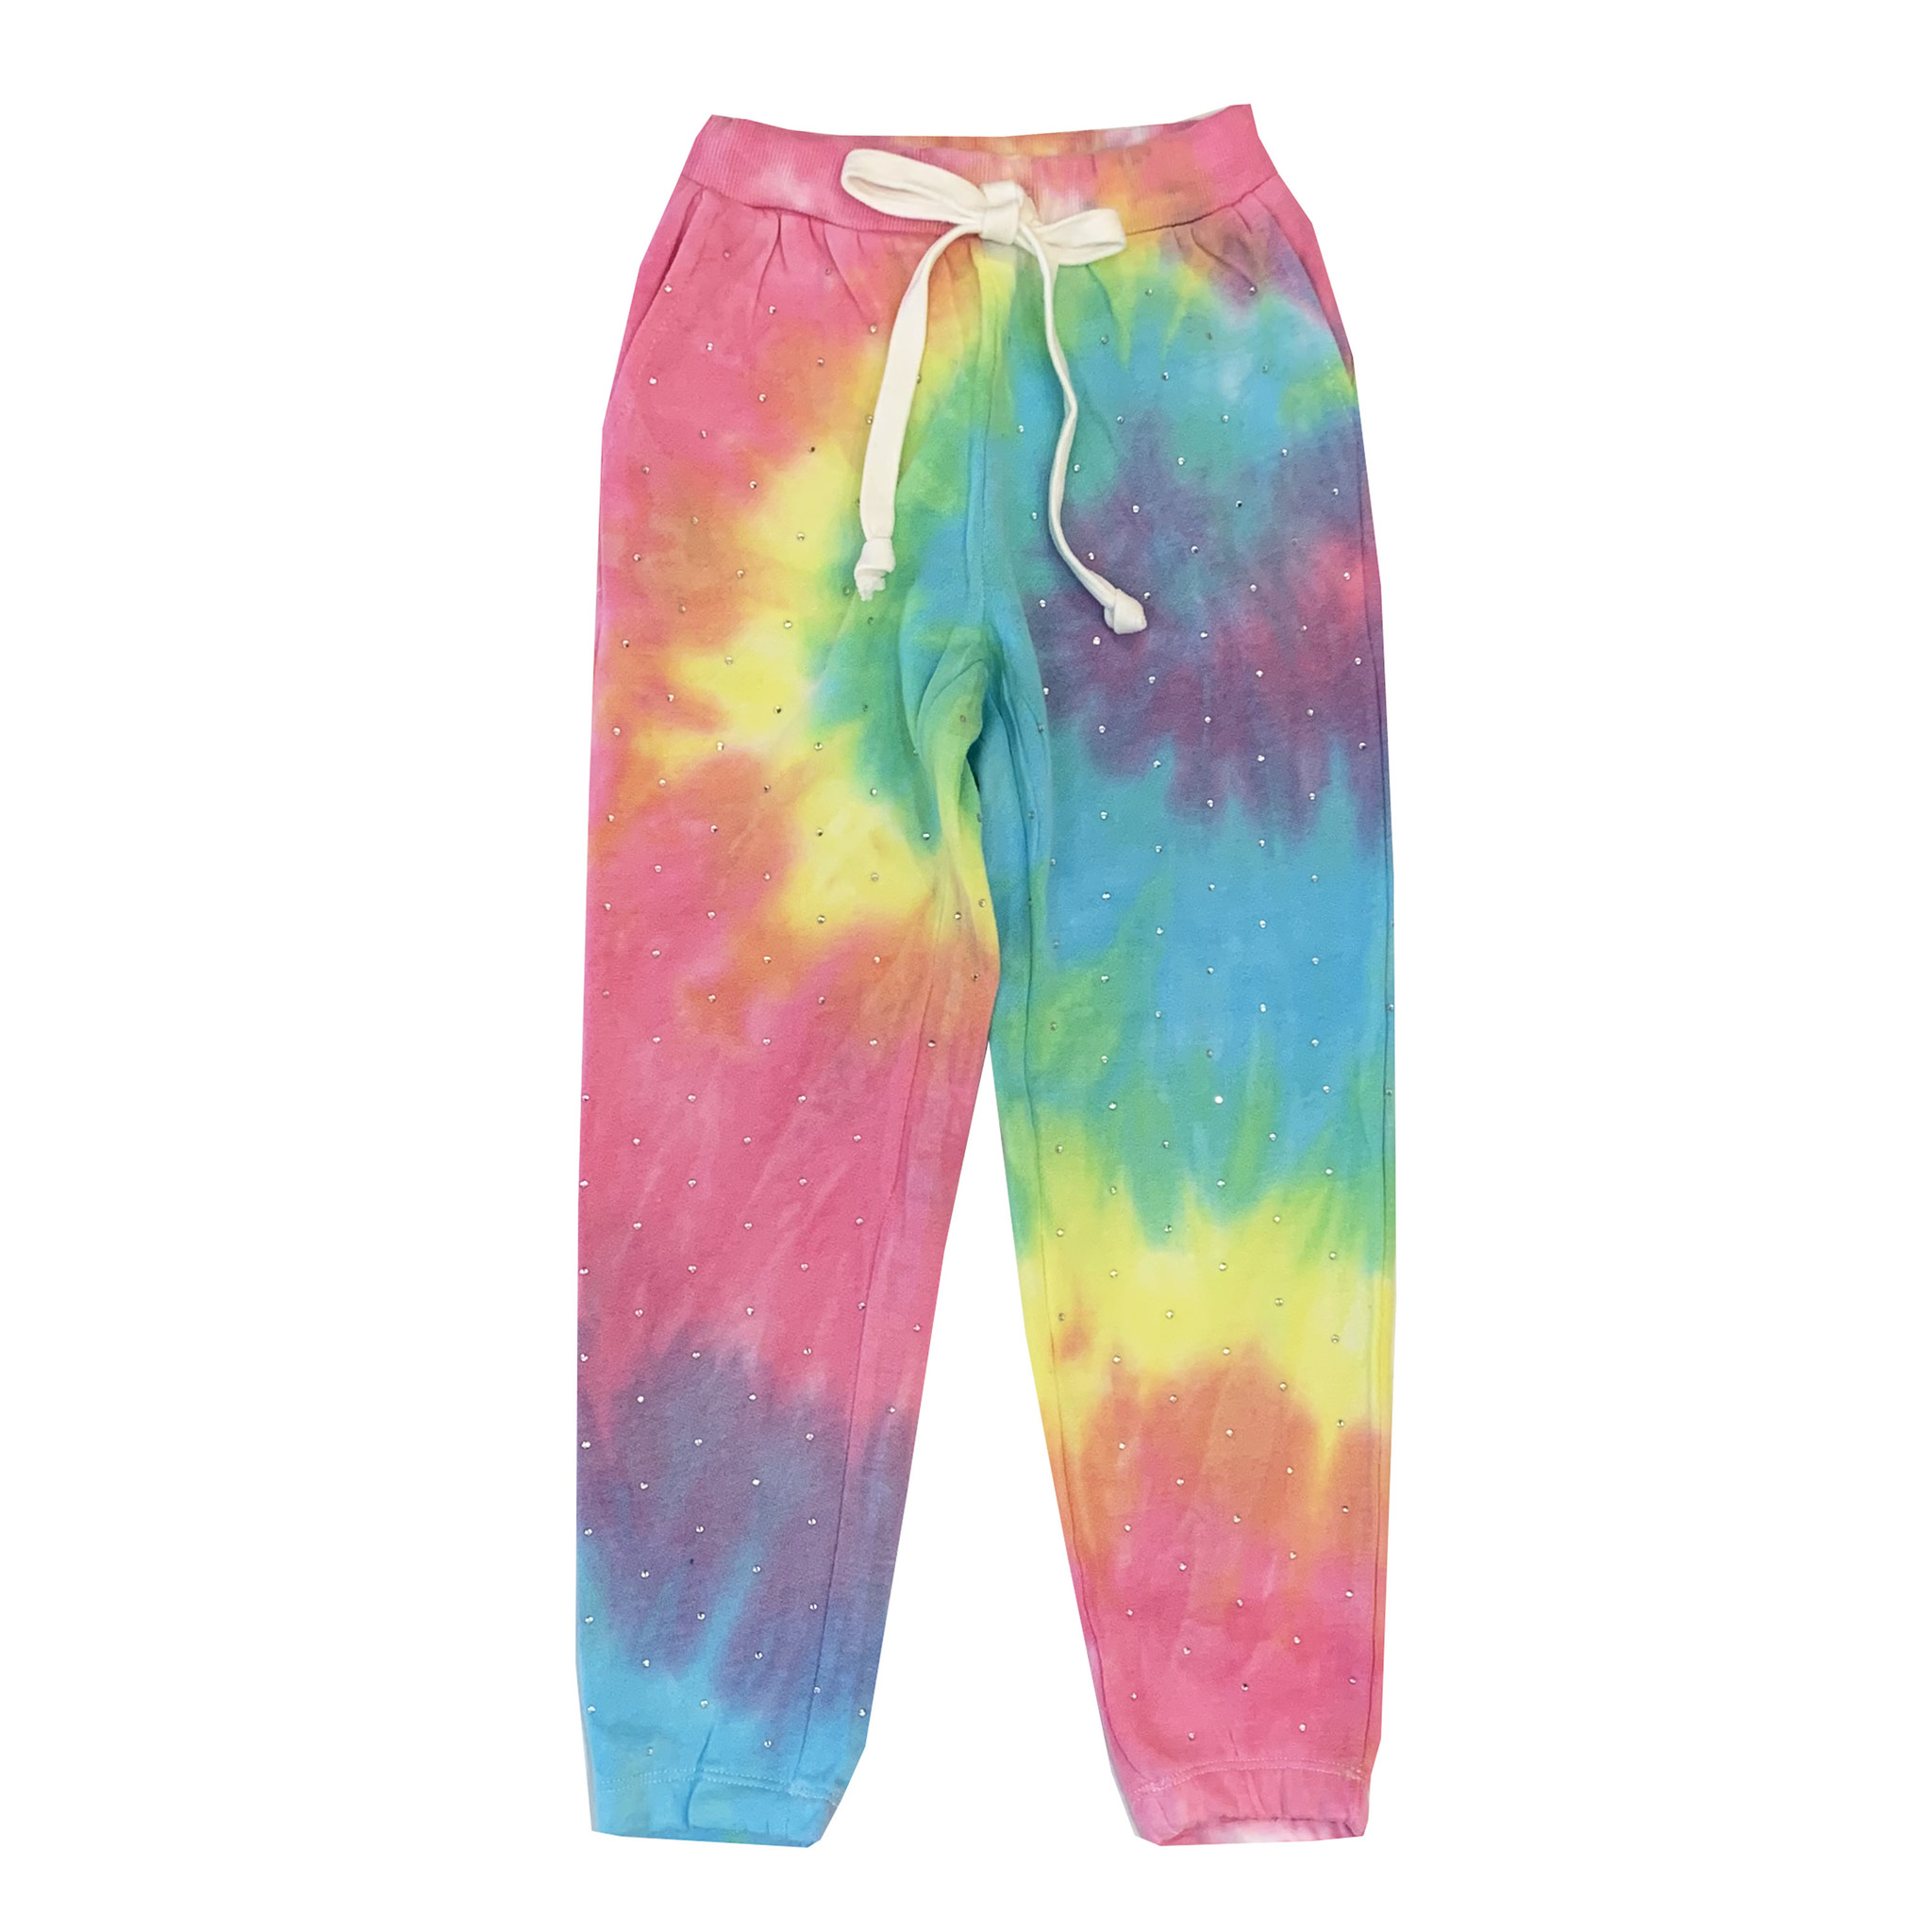 Katie J Bright Tie Dye Sweatpants with Rhinestones